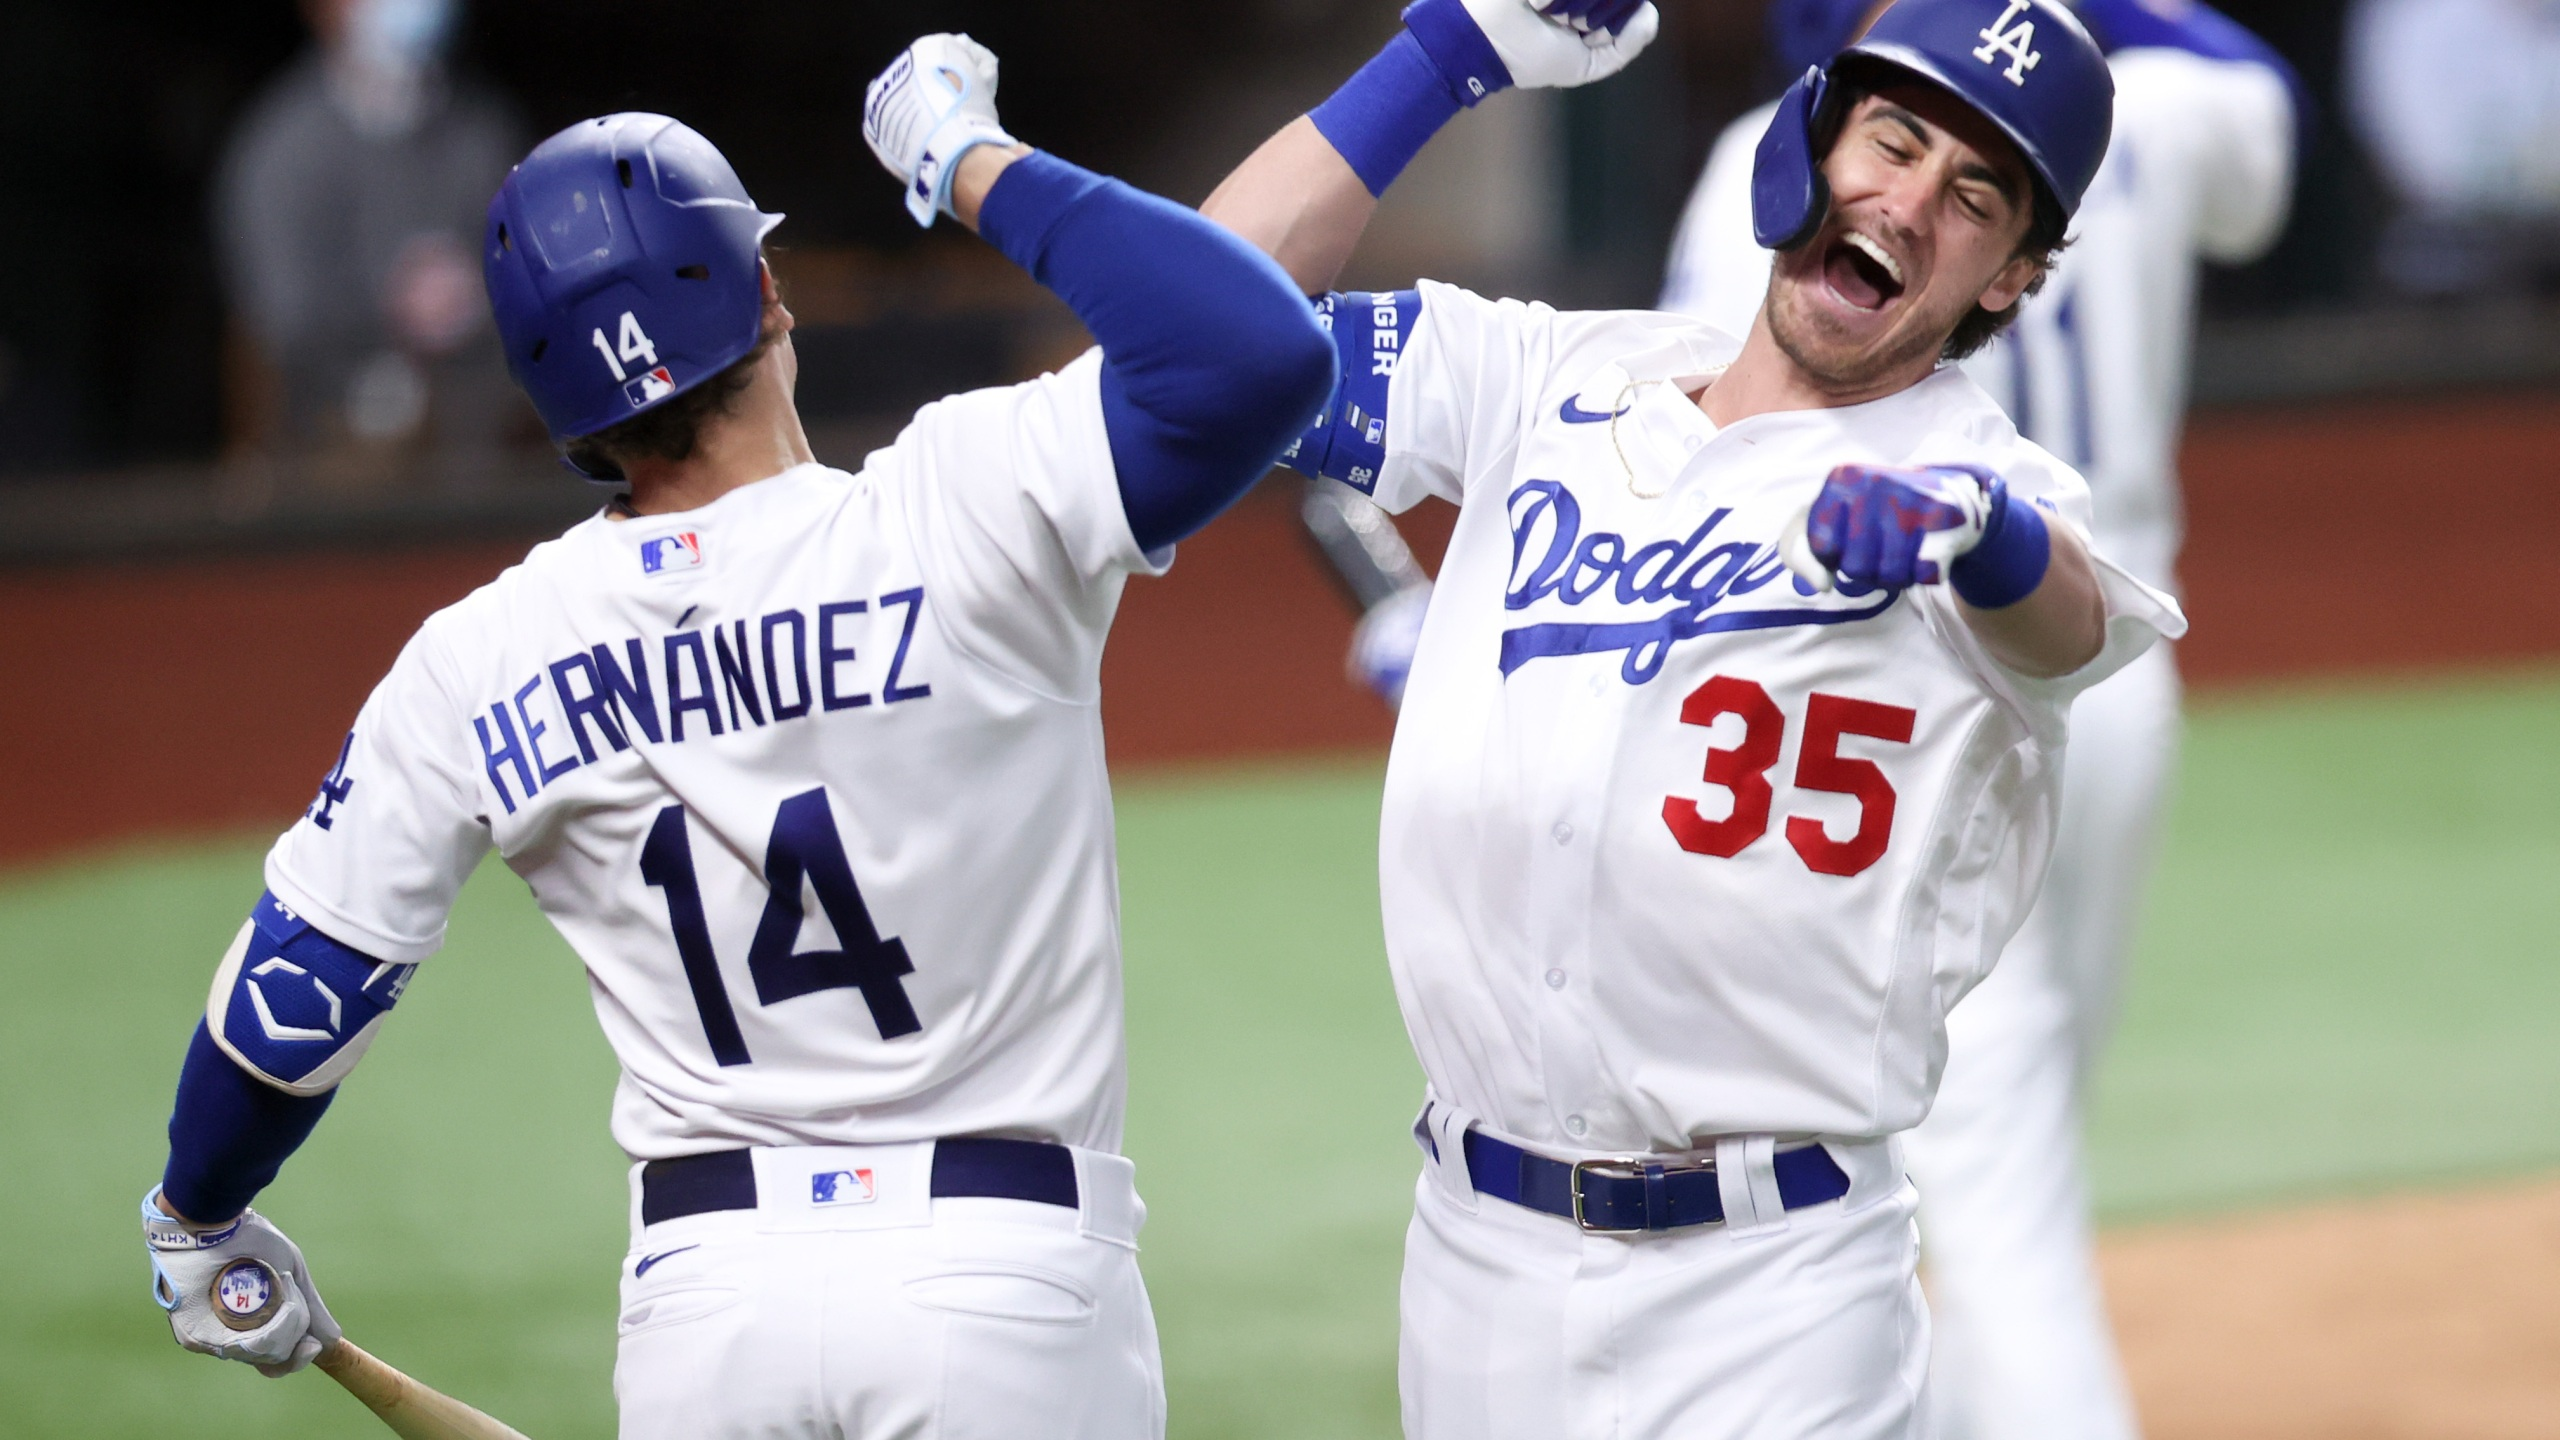 Cody Bellinger #35 of the Los Angeles Dodgers is congratulated by Enrique Hernandez #14 after hitting a solo home run against the Atlanta Braves during the seventh inning in Game Seven of the National League Championship Series at Globe Life Field on Oct. 18, 2020 in Arlington, Texas. (Tom Pennington/Getty Images)